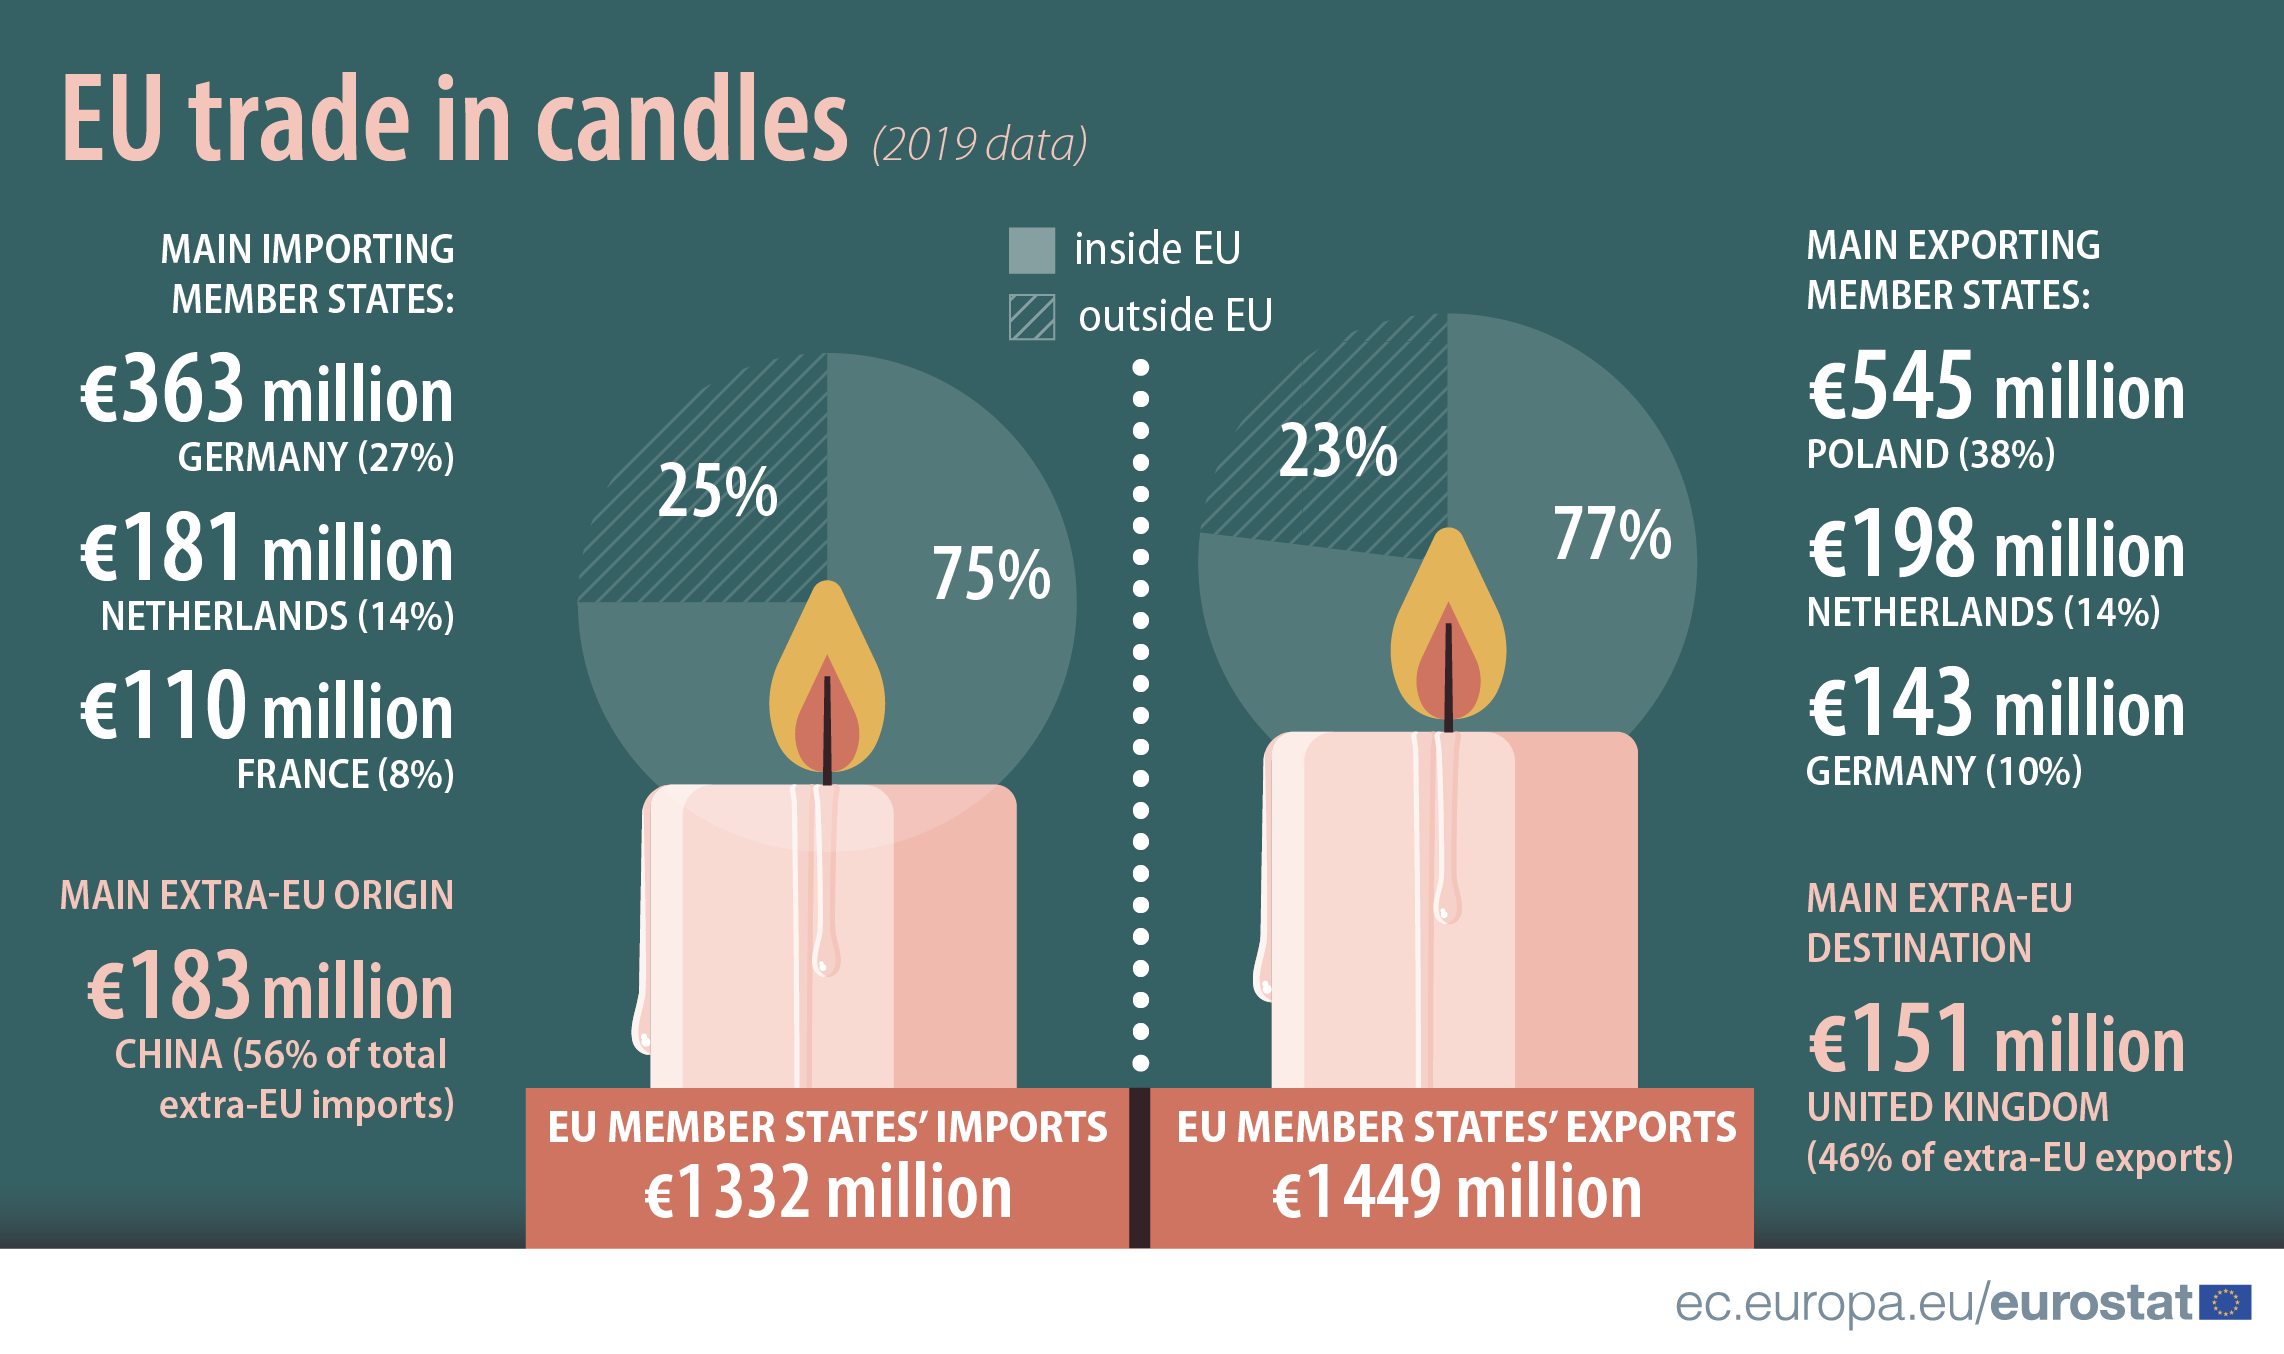 Infographic: EU trade in candles